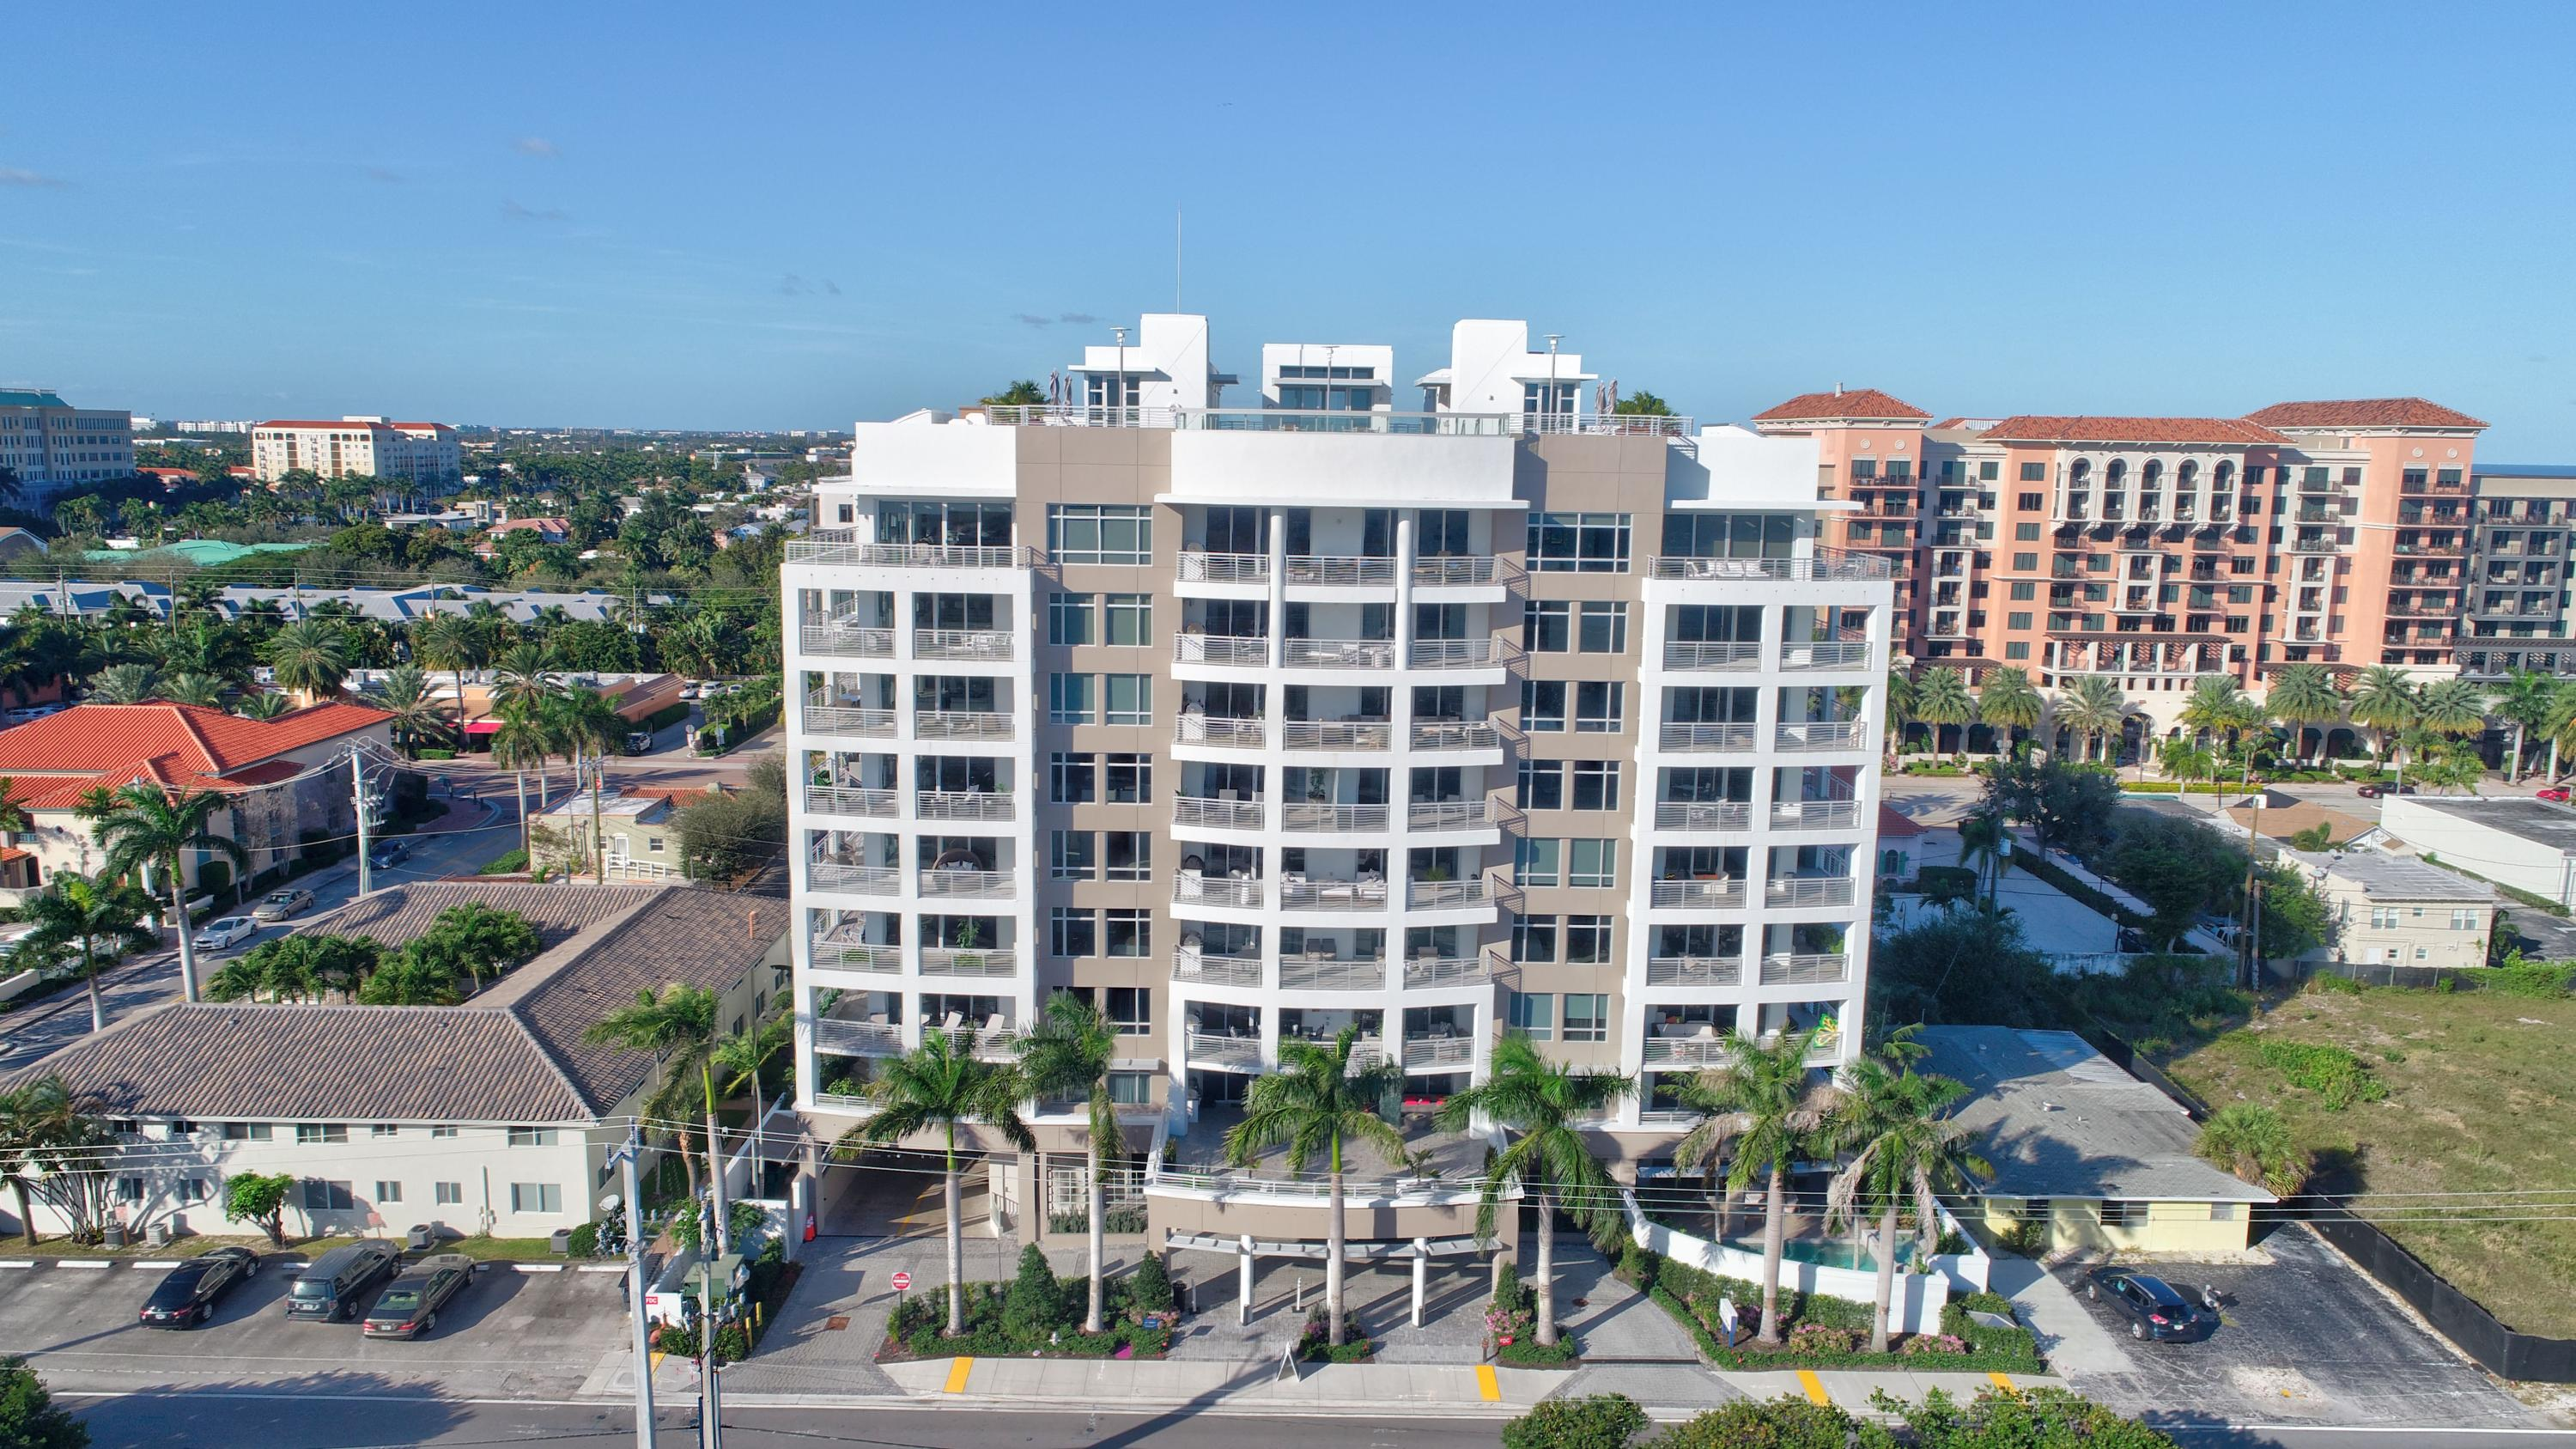 This elegant and contemporary condo is conveniently located between downtown Boca Raton and the beach close to Royal Palm Plaza, Mizner Park and the Boca Raton Resort. Only 24 exclusive units. Enter your personal oasis from the private elevator. Enjoy the expansive views from the wrap-around balcony.  3 bedrooms and 3.5 baths.   Every imaginable upgrade has been included--porcelanosa wood grain tile throughout, white quartz caesarstone counters in the kitchen and baths, motorized shades, Grohe faucelt, Wolf and Sub Zero kitchen appliances plus Viking beverage center to name but a few.  Built-in closets in each bedroom. Outdoor Wolf natural gas grill. Impact glass windows.  RTI audio system throughout.  Nest cameras strategically located.  The vibrant Boca lifestyle awaits!